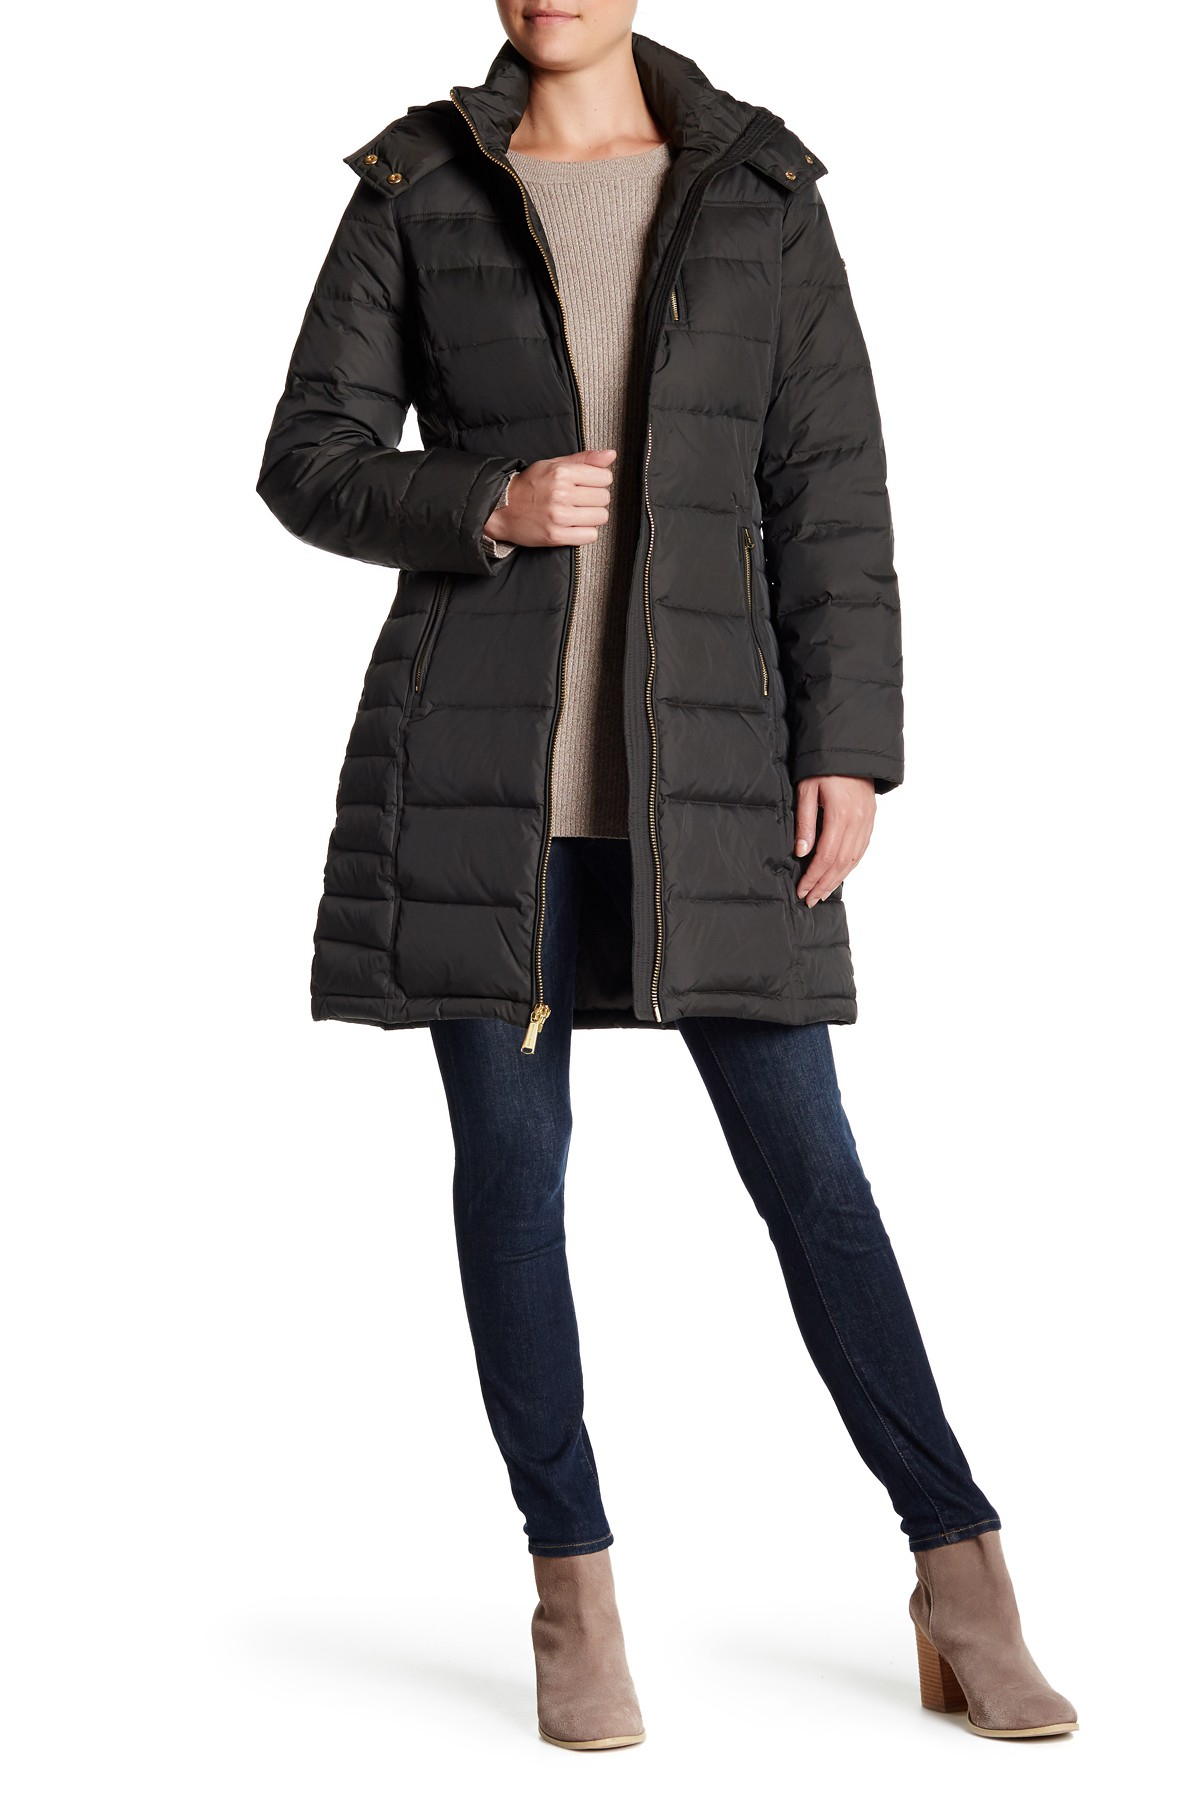 Lyst Michael Kors Hooded Down Amp Feather Quilted Coat In